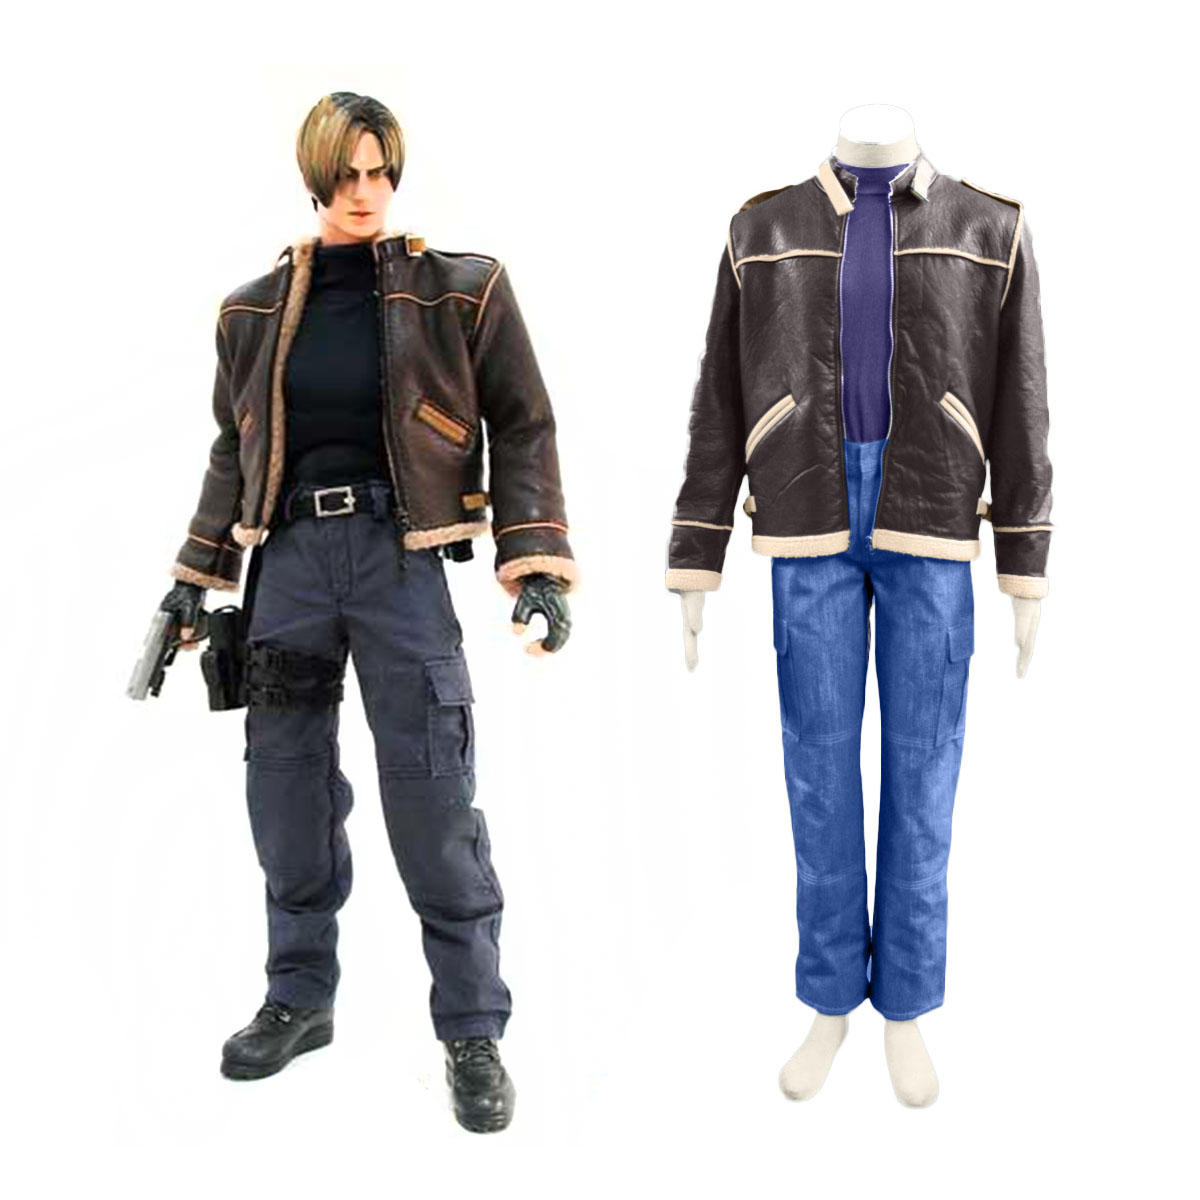 Resident Evil 4 Leon S. Kennedy Cosplay Puvut Suomi